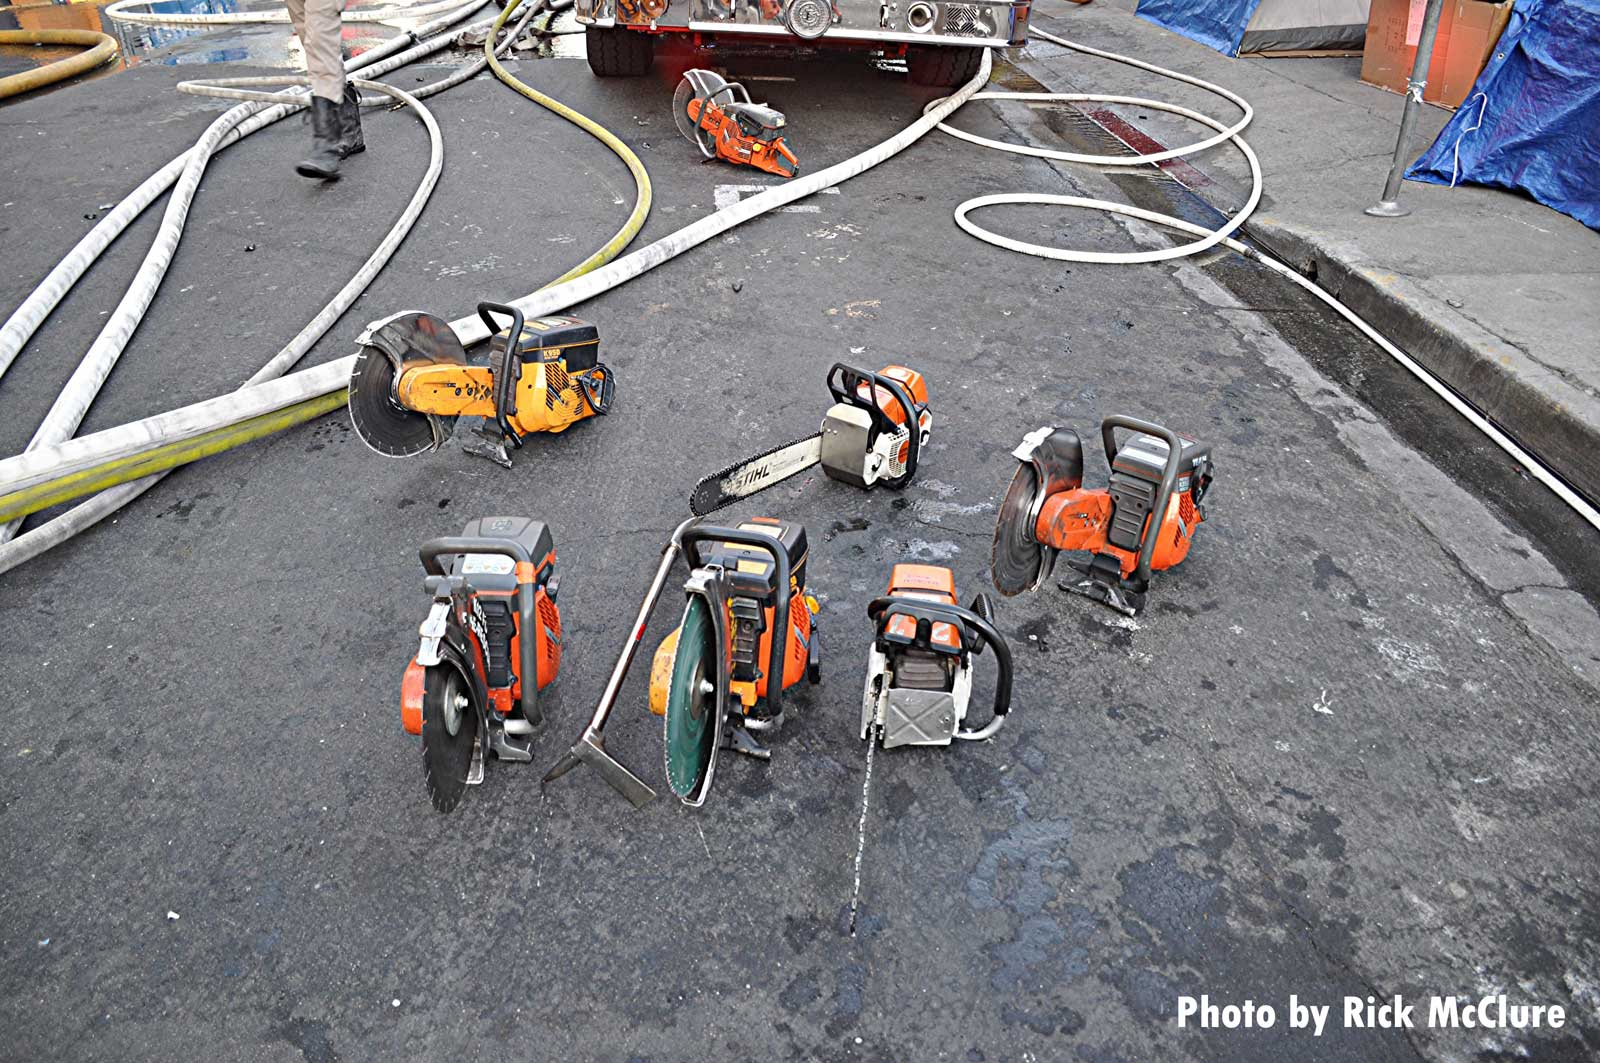 A set of power saws in the street